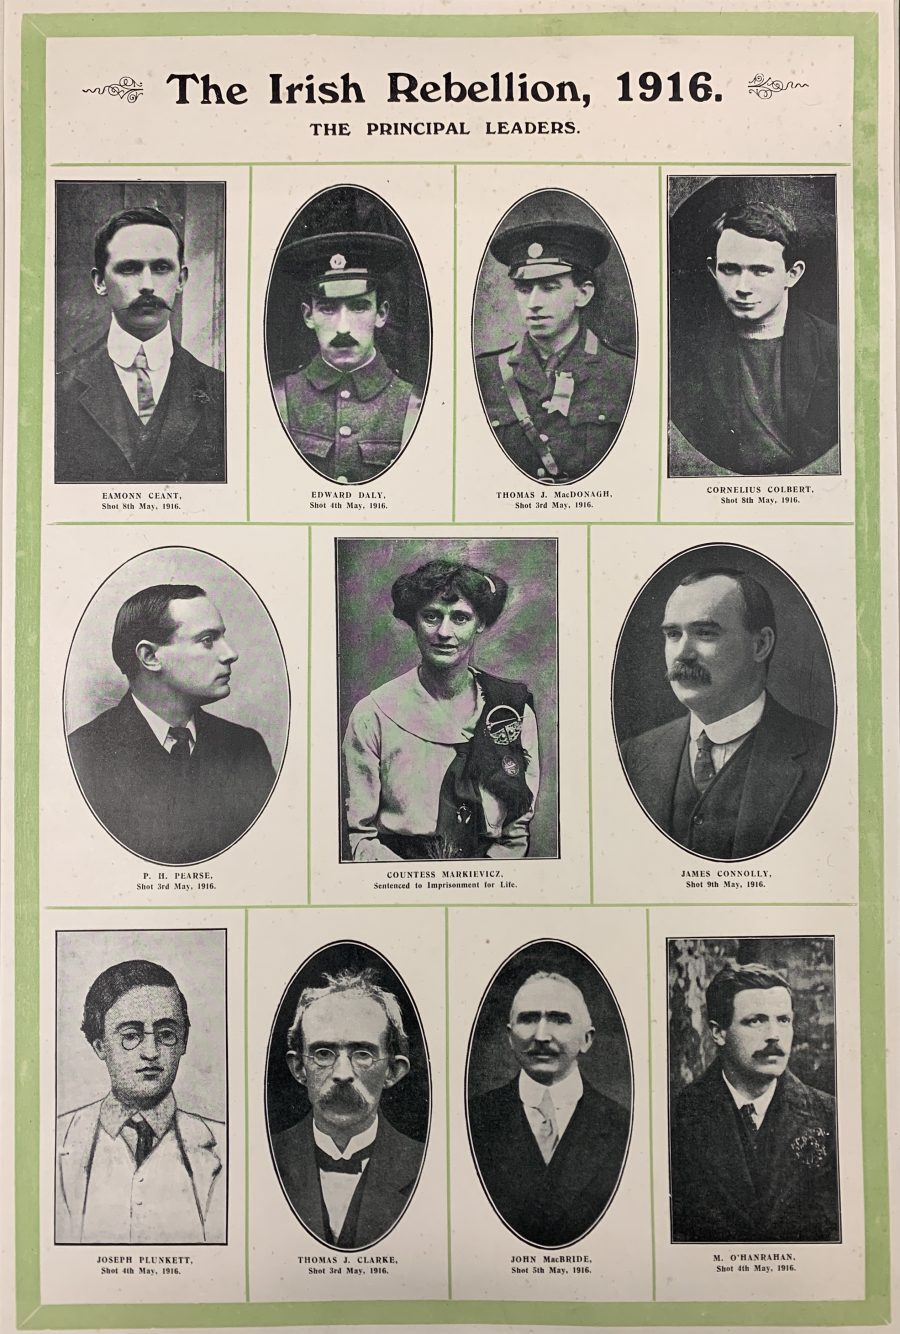 THE IRISH REBELLION, 1916. The Principal Leaders. Poster print showing photographs of the seven signatories of the Proclamation together with Con Colbert, Edward Daly, Countess Markiewicz and M. O'Hanrahan